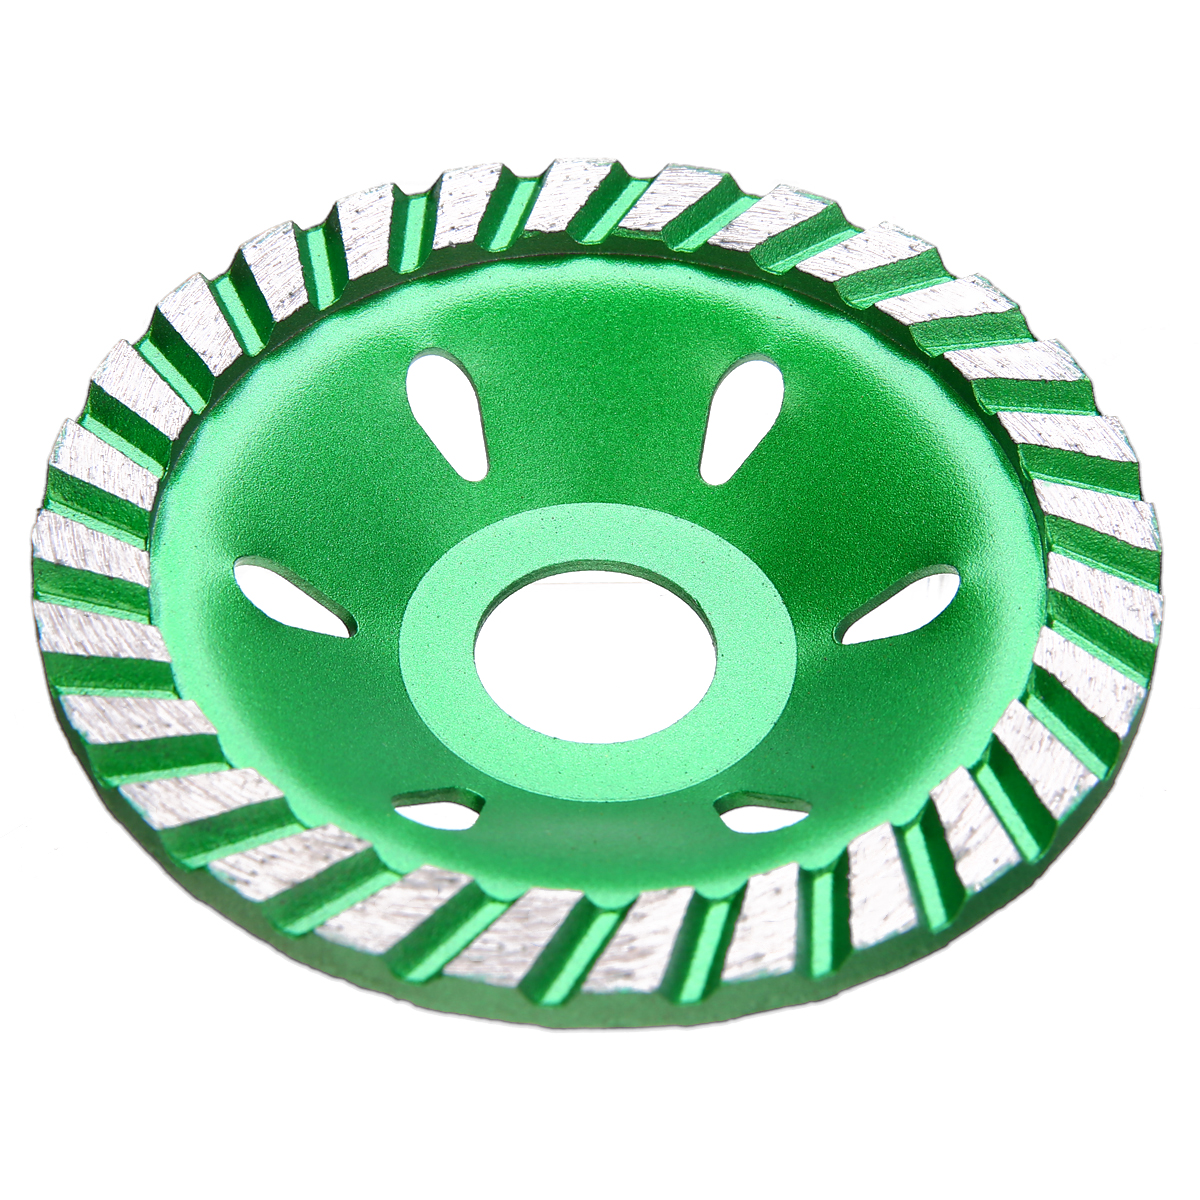 1pc Diamond Grinding Cup Wheel 4 Inch/100mm Cutting Disc For Concrete Masonry Stone Grinder Tools